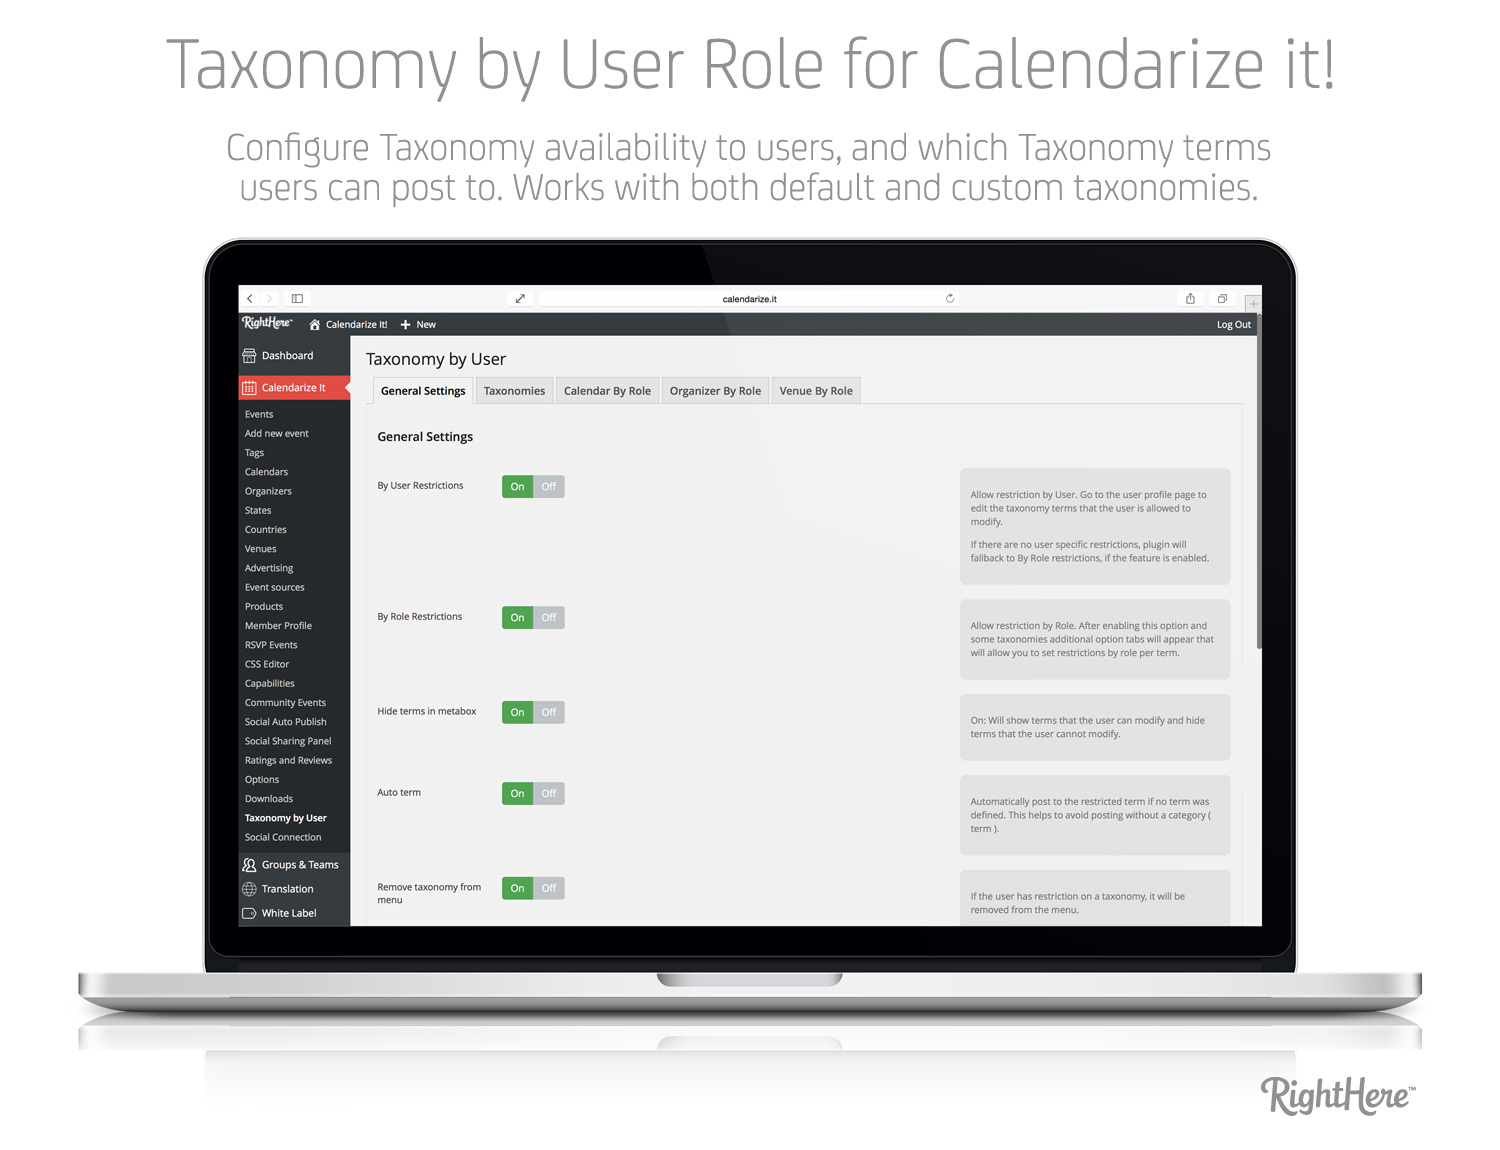 Taxonomy by User Role - General Settings Tab